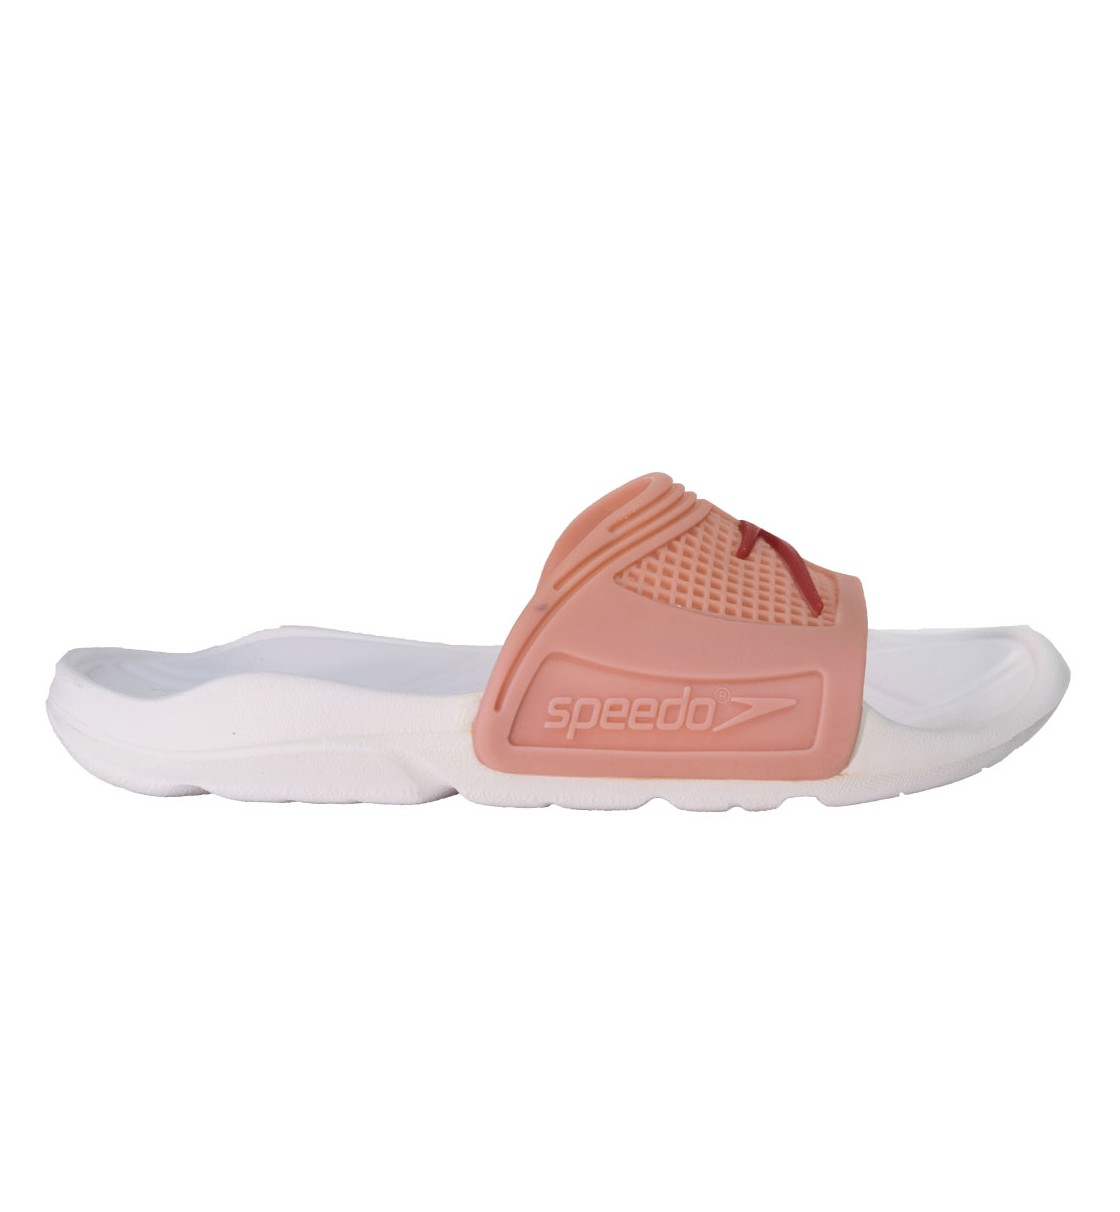 Speedo RAPID II POOLSHOE JNR